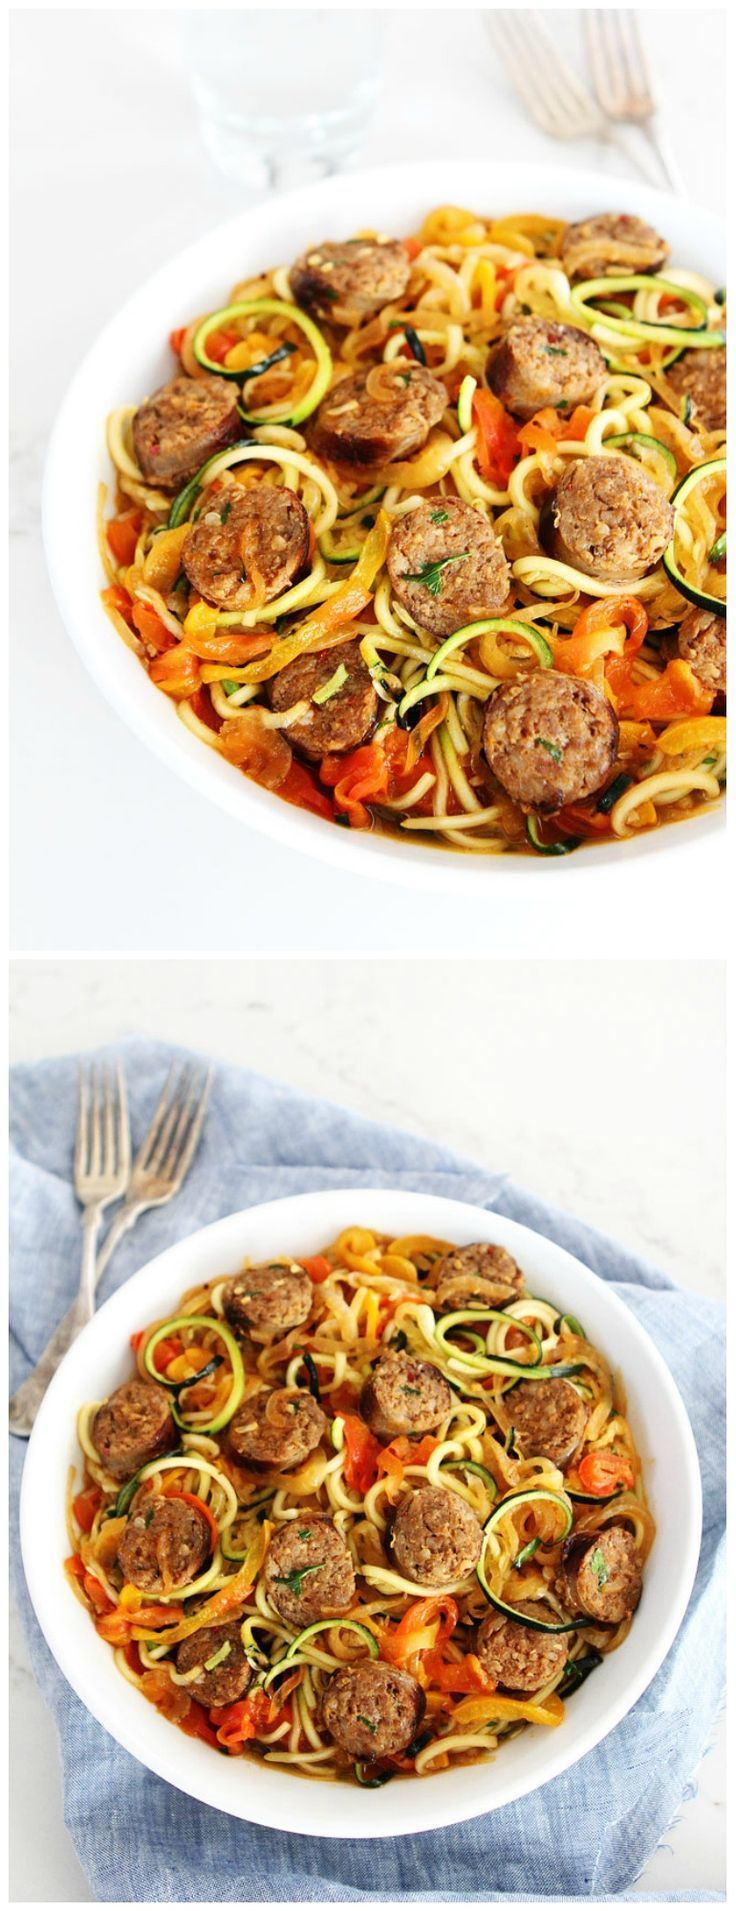 Sausage and Peppers with Zucchini Noodles Recipe on http://twopeasandtheirpod.com Sweet and spicy Italian sausage with peppers, onions, and zucchini noodles in a simple garlic tomato sauce. This quick and easy dinner is a family favorite!